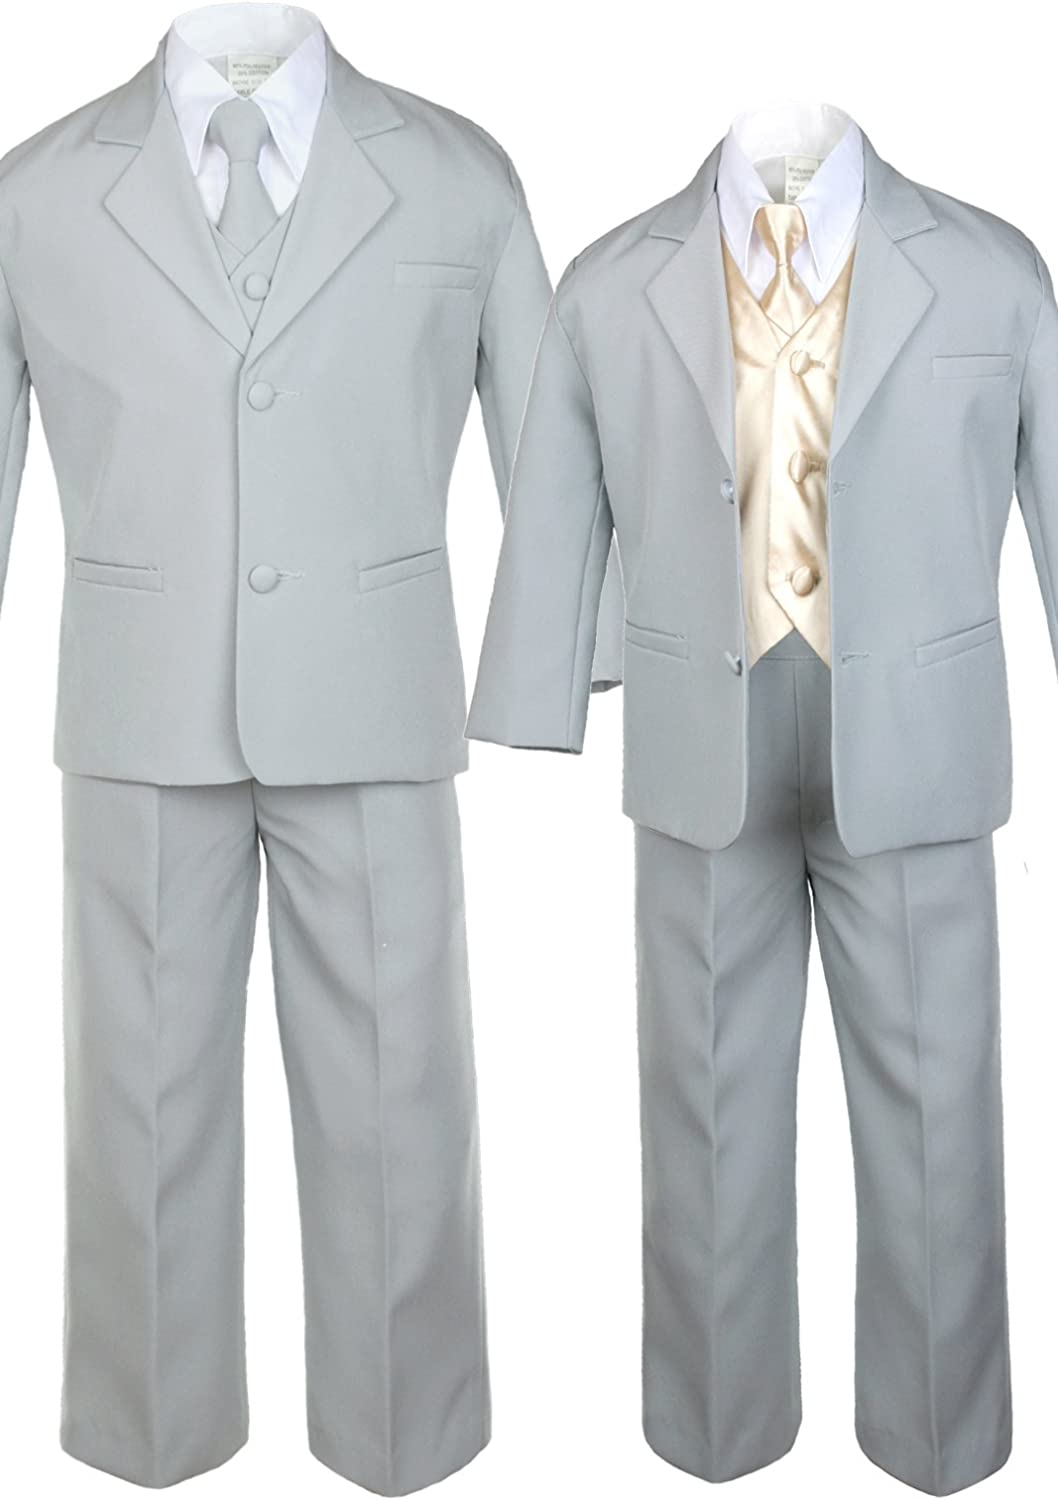 Unotux 7pc Boys Silver Suit with Satin White Vest Set from Baby to Teen